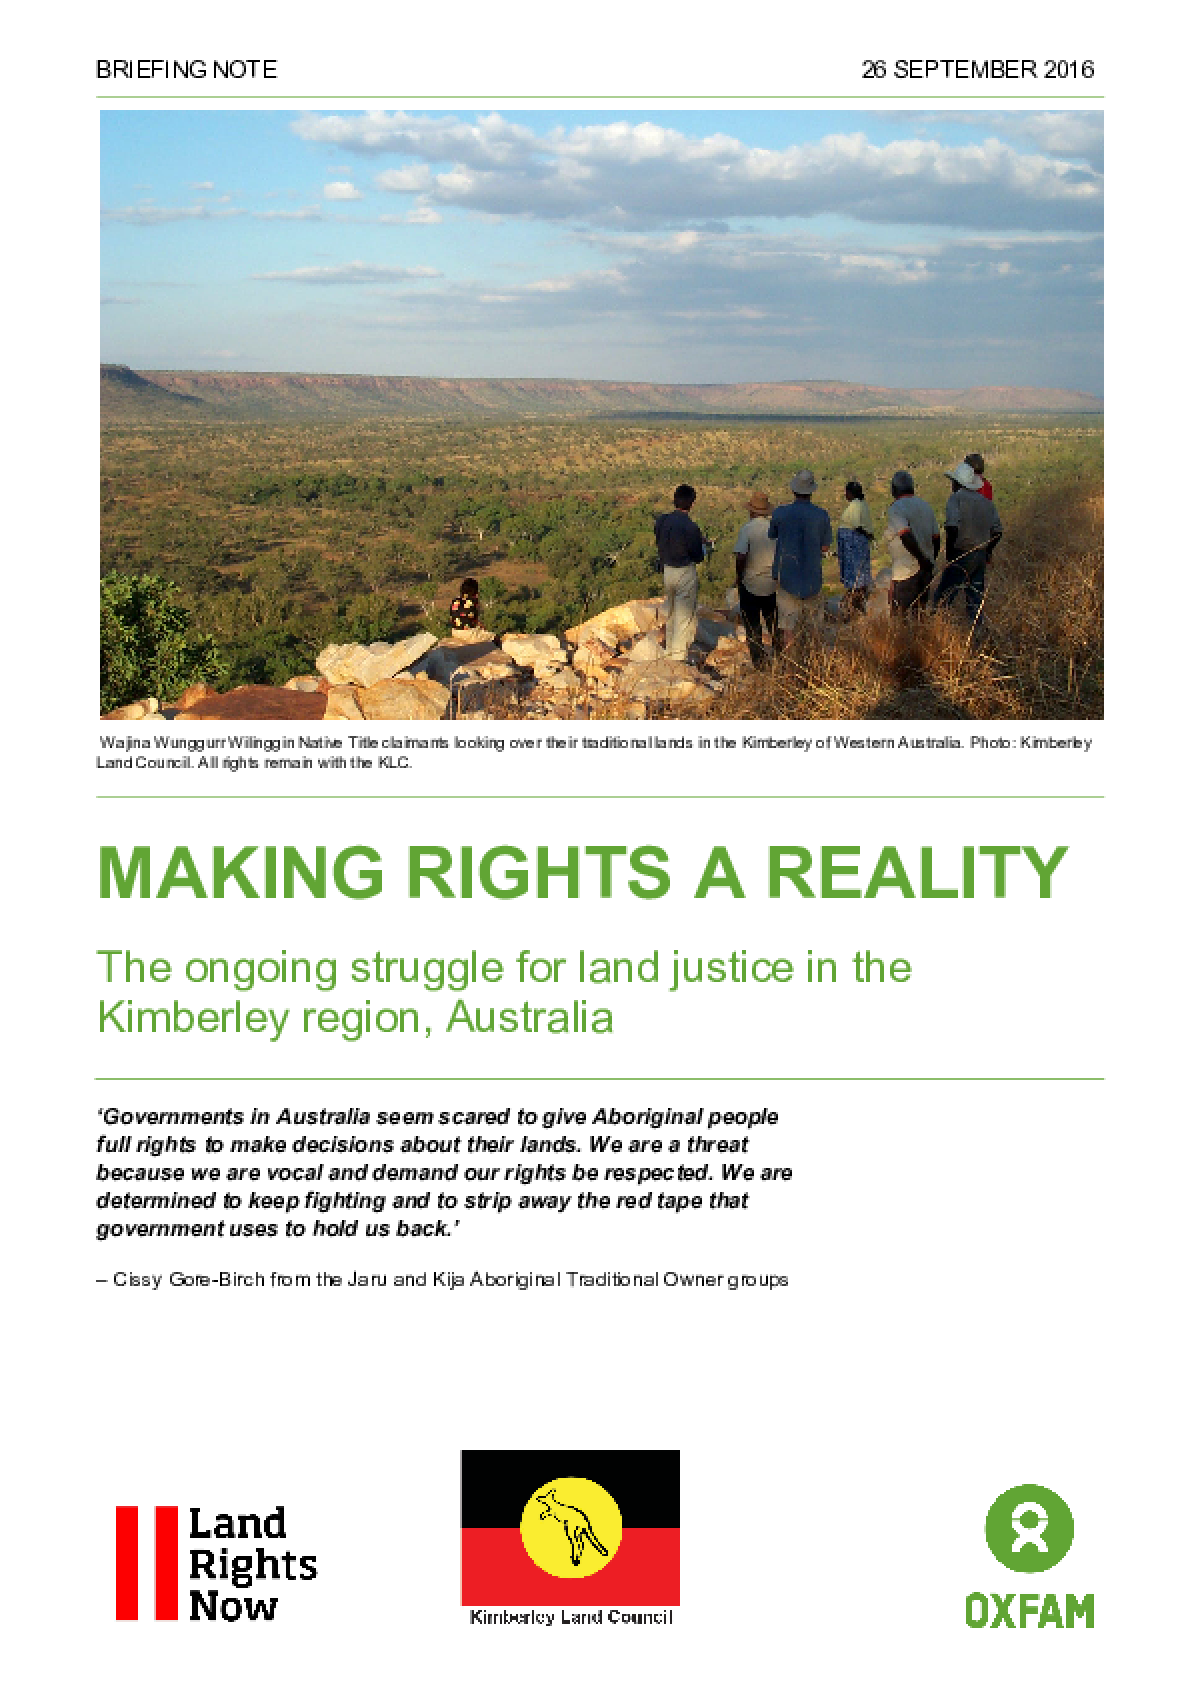 Making Rights a Reality: The ongoing struggle for land justice in the Kimberley Region, Australia